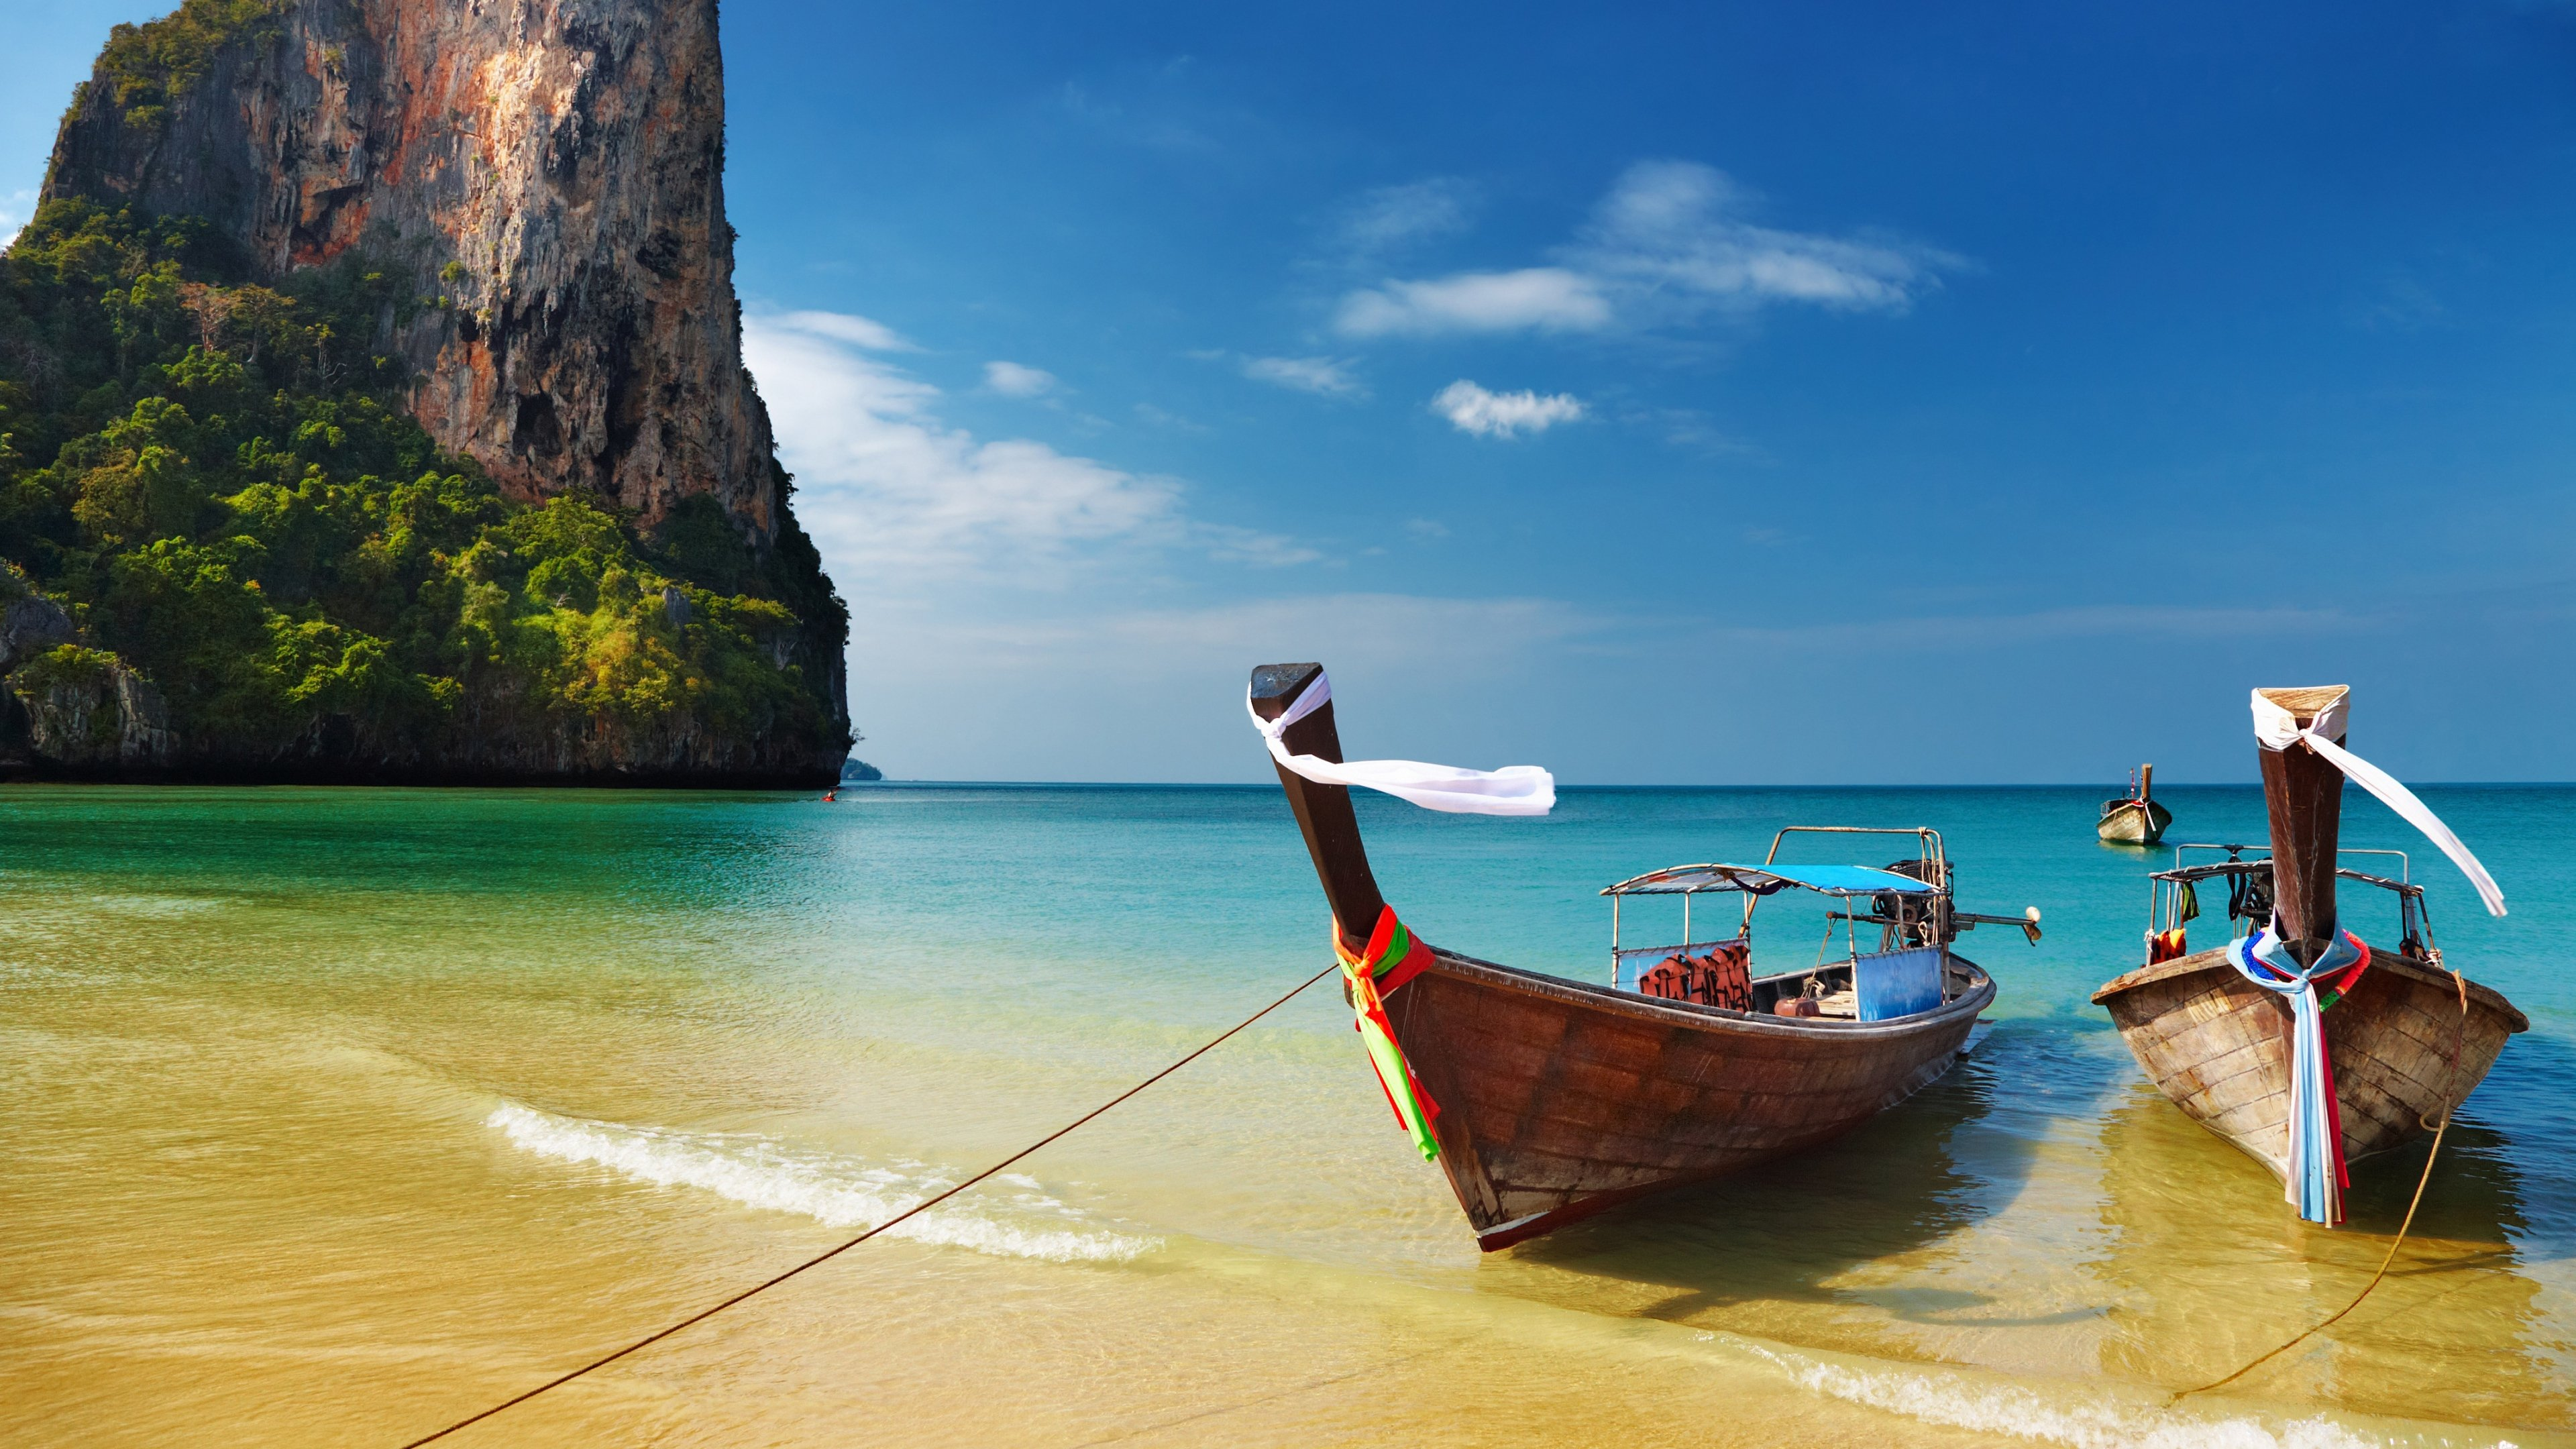 beach Thailand Ultra HD wallpaper Wide Screen Wallpaper 1080p2K4K 3840x2160